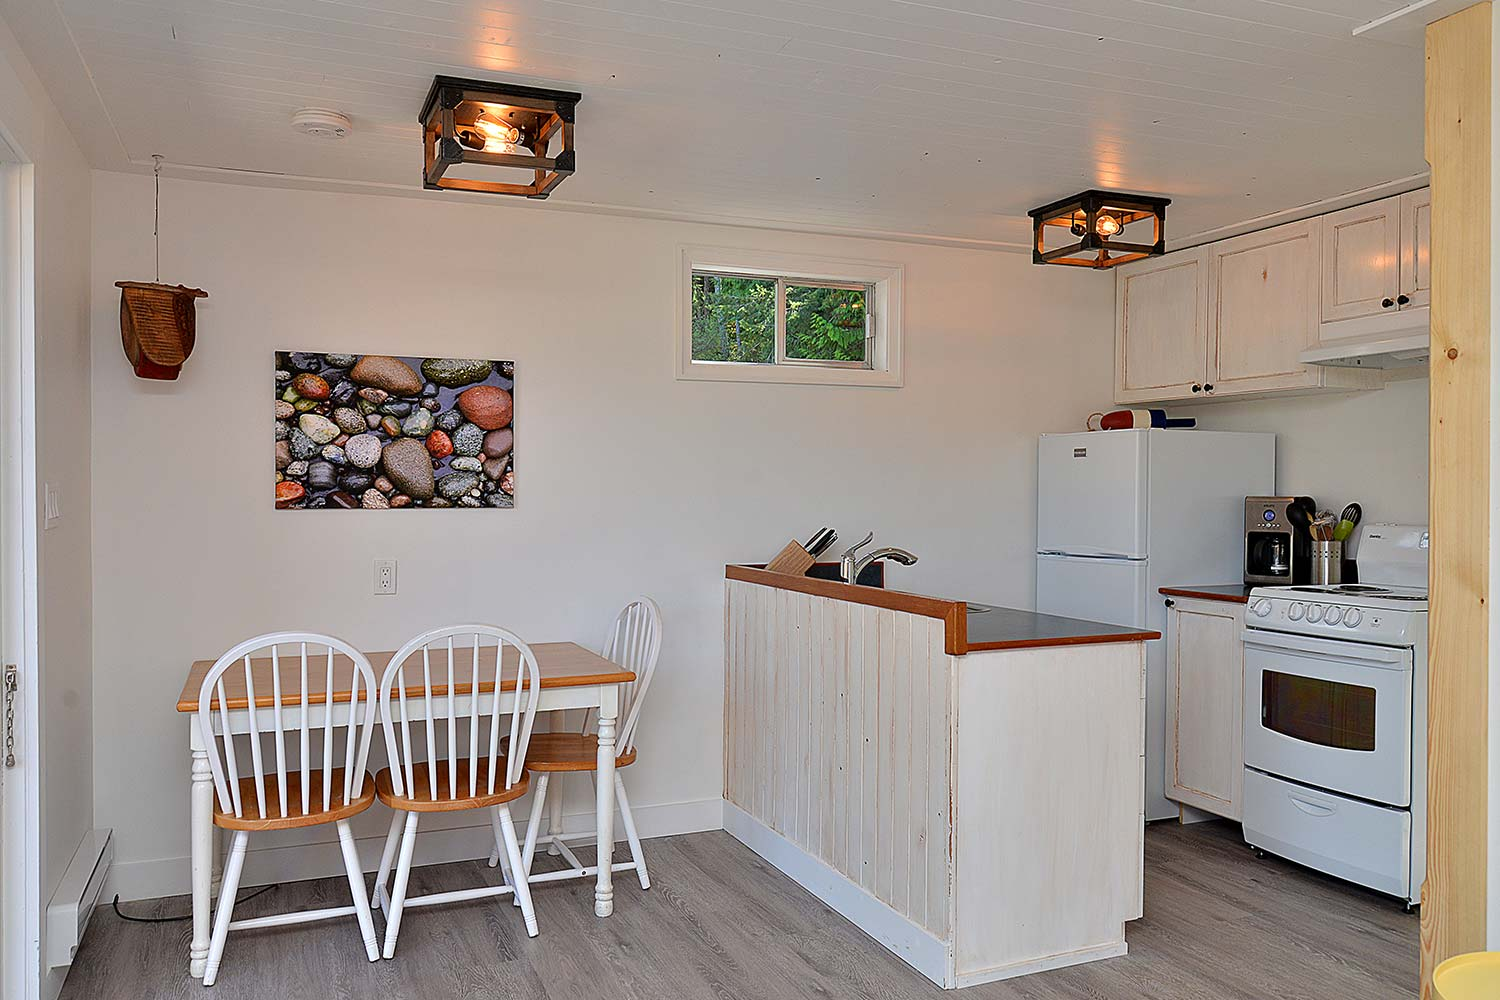 The kitchenette and dining table in this shoreline cottage. The kitchen features a coffee maker, stove & refrigerator.